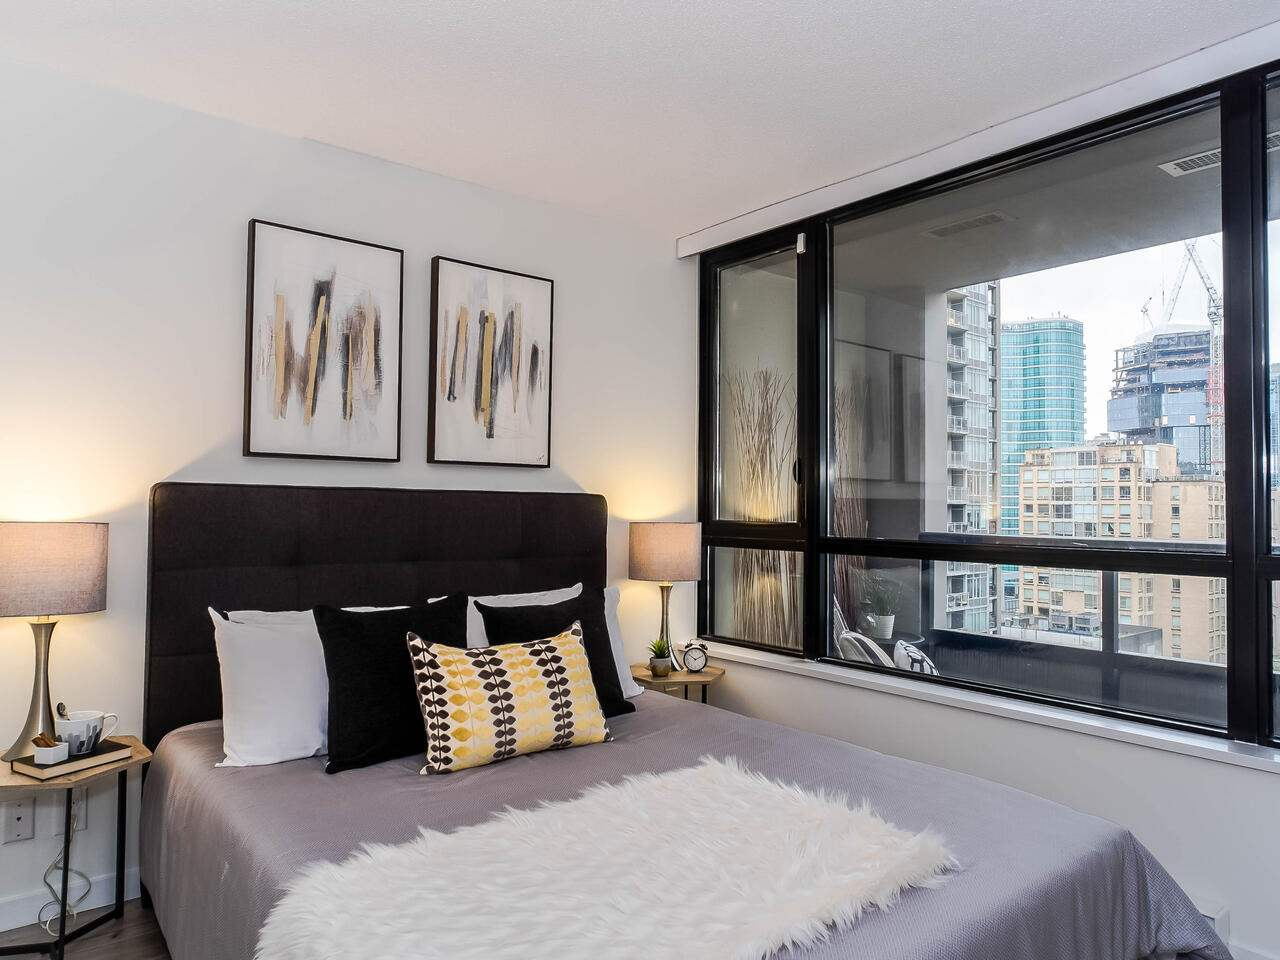 1810 909 MAINLAND STREET - Yaletown Apartment/Condo for sale, 1 Bedroom (R2518845) - #19